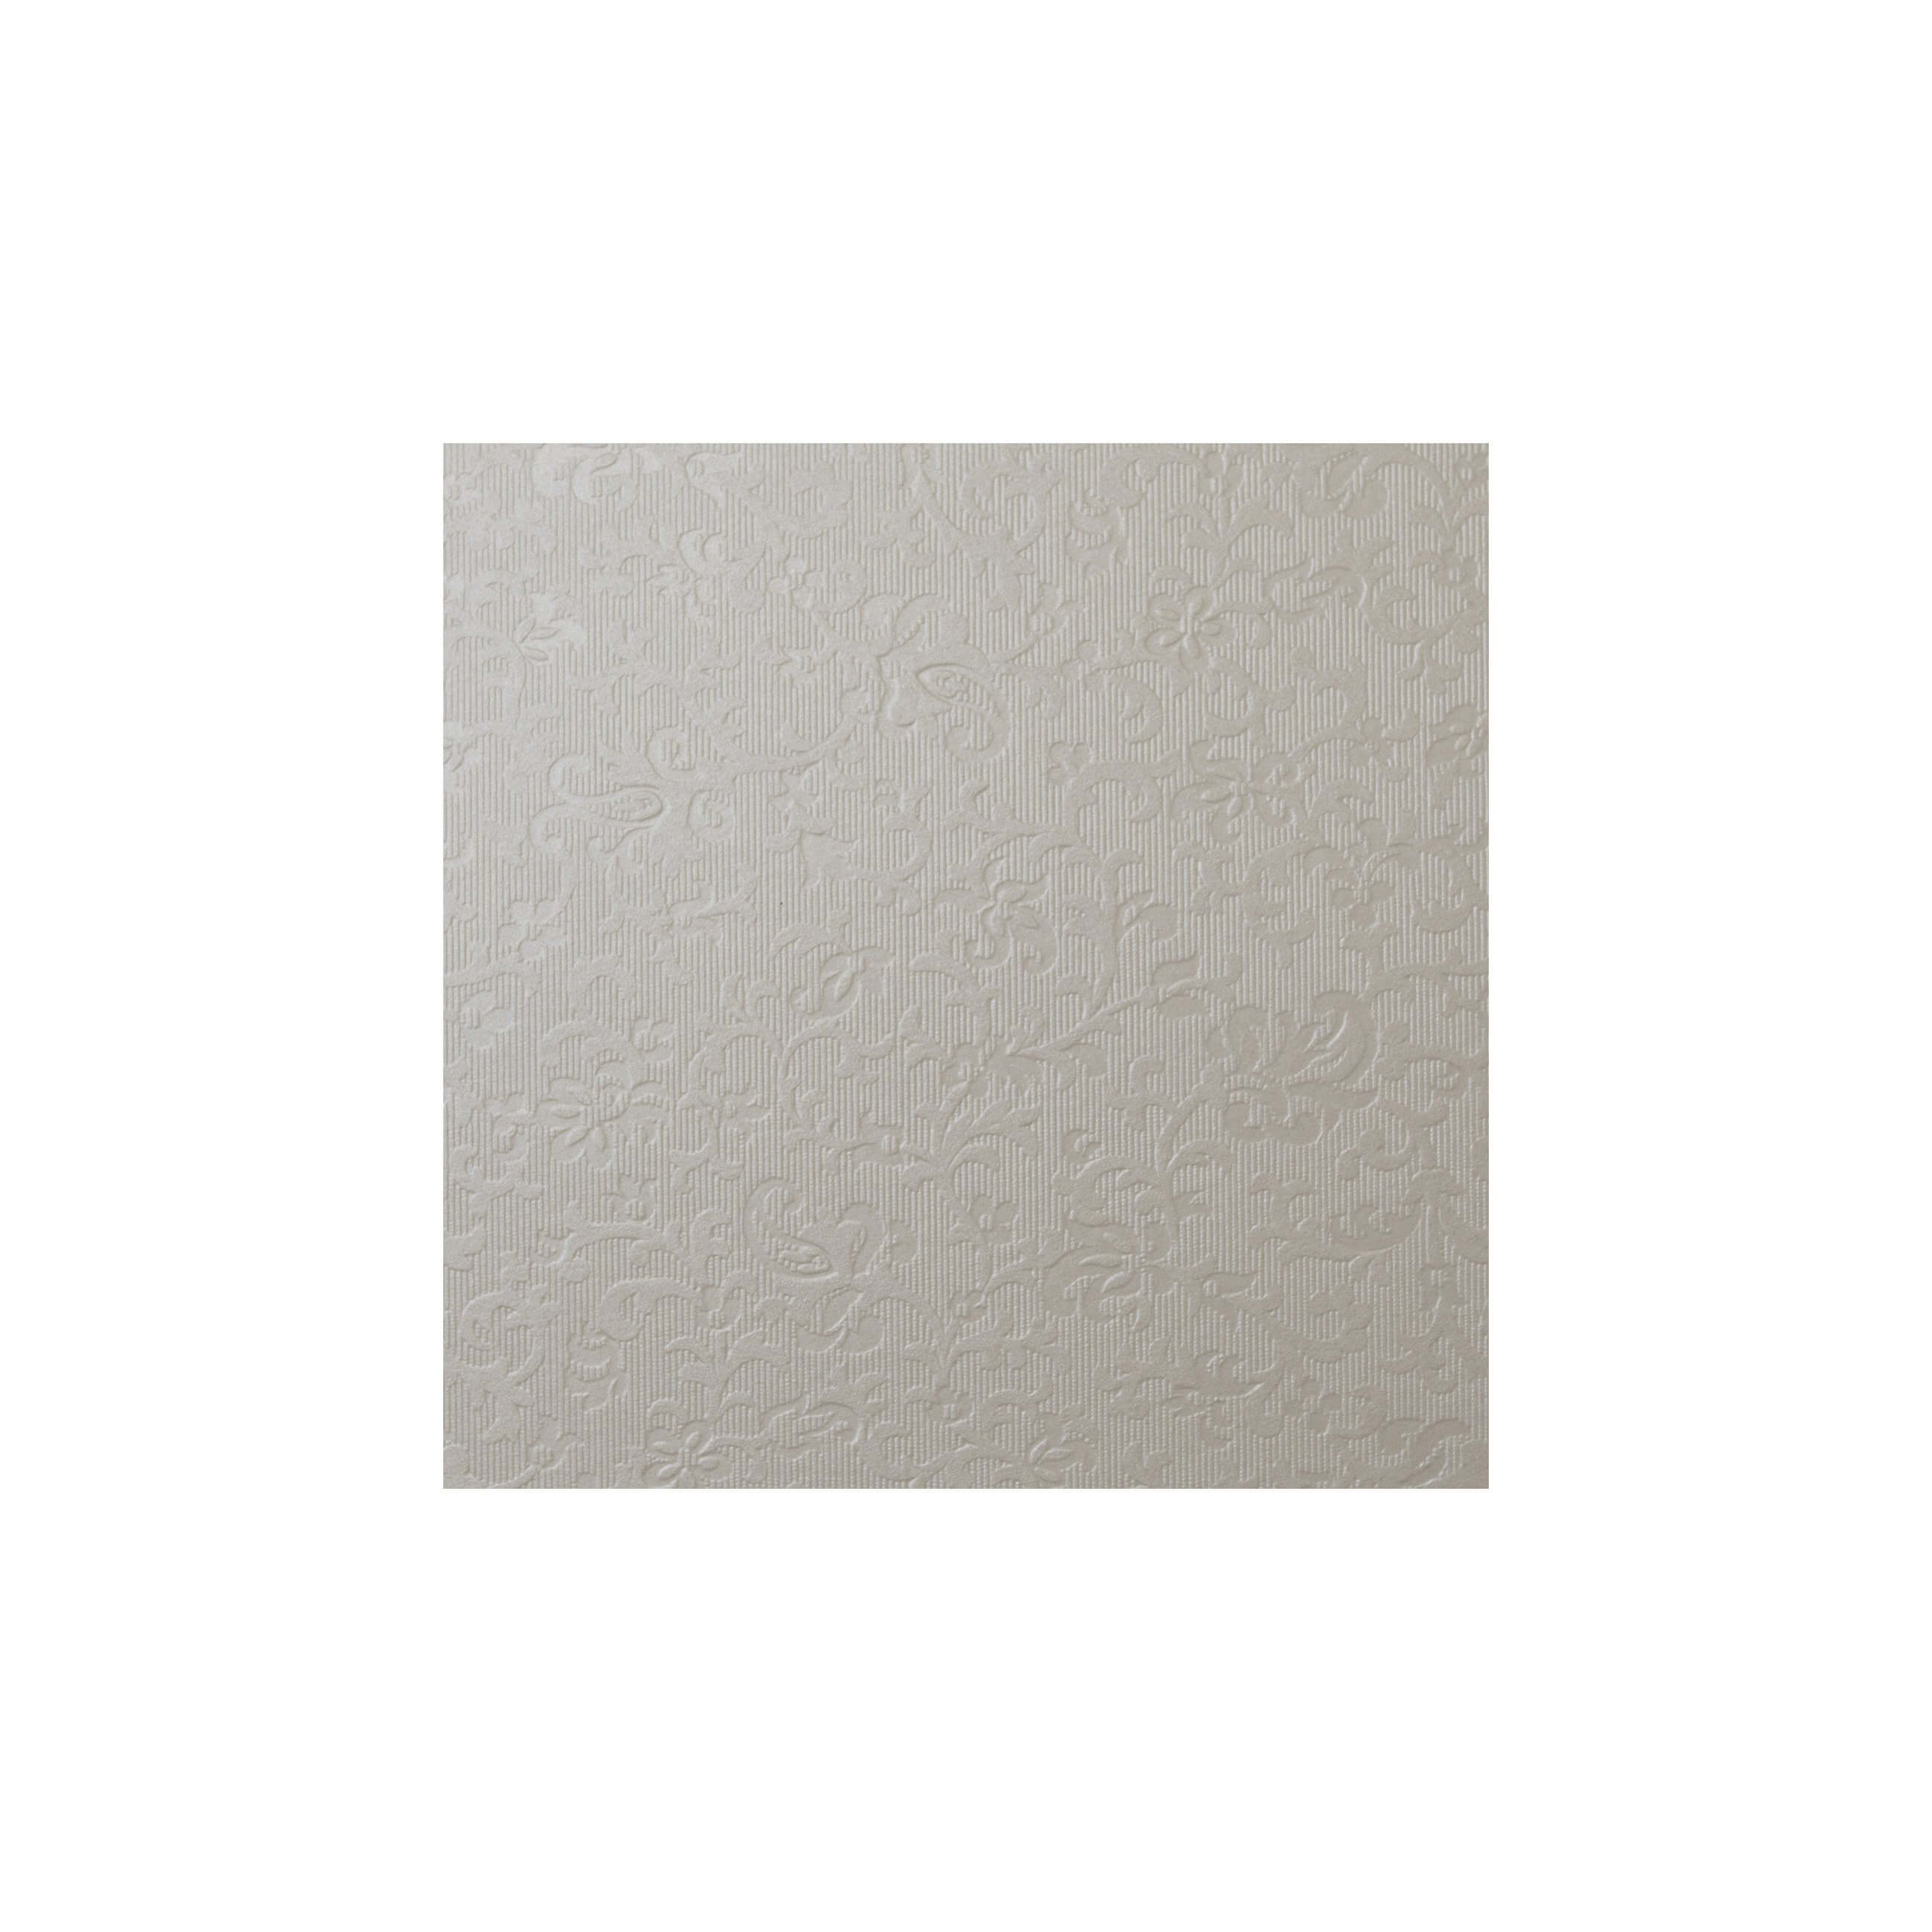 Cardstock 119mm Square - Applique Ivory